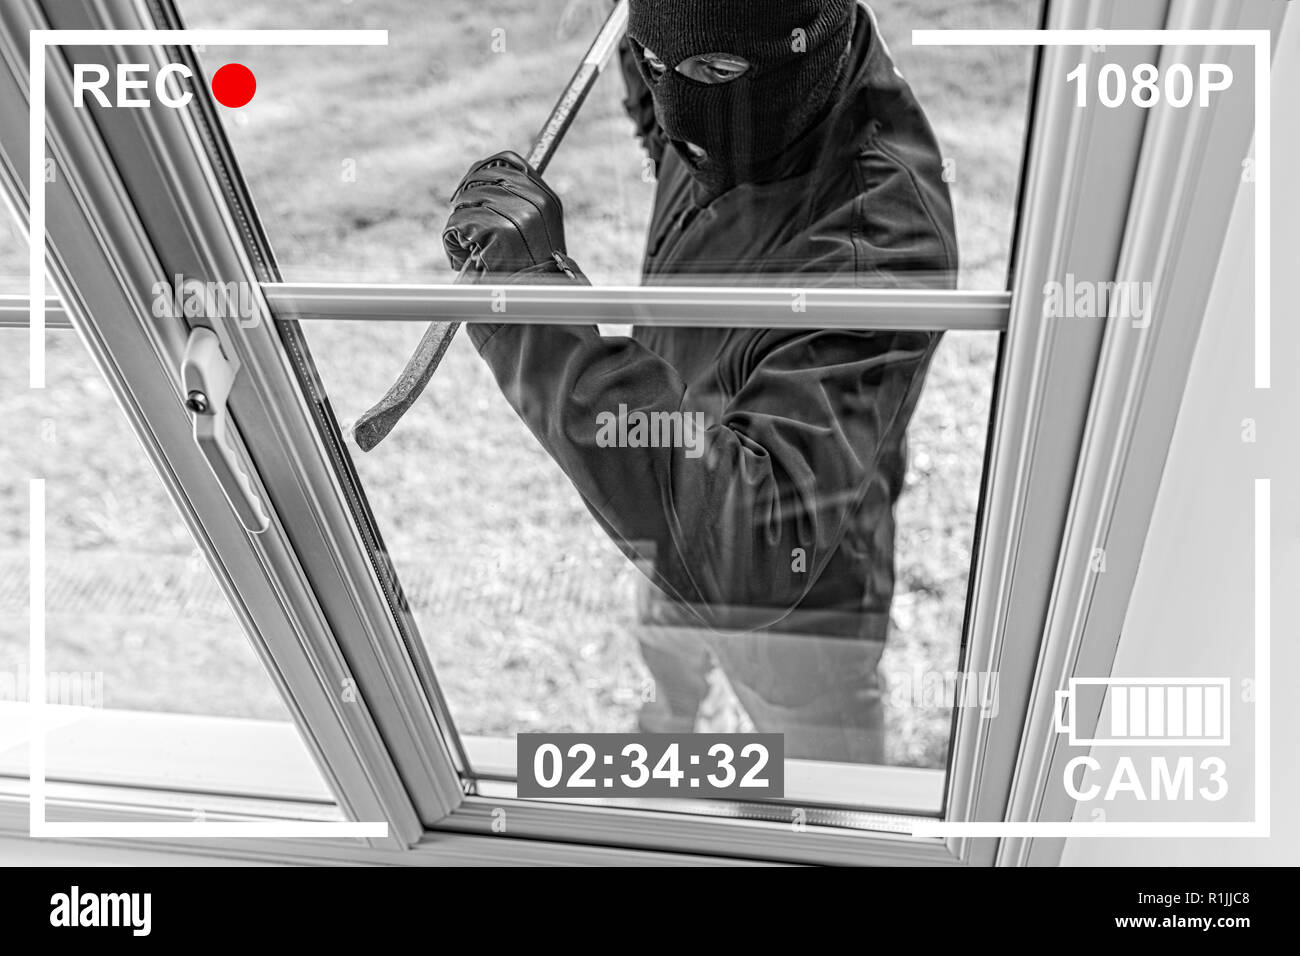 CCTV view of burglar breaking in to home through window with crowbar - Stock Image